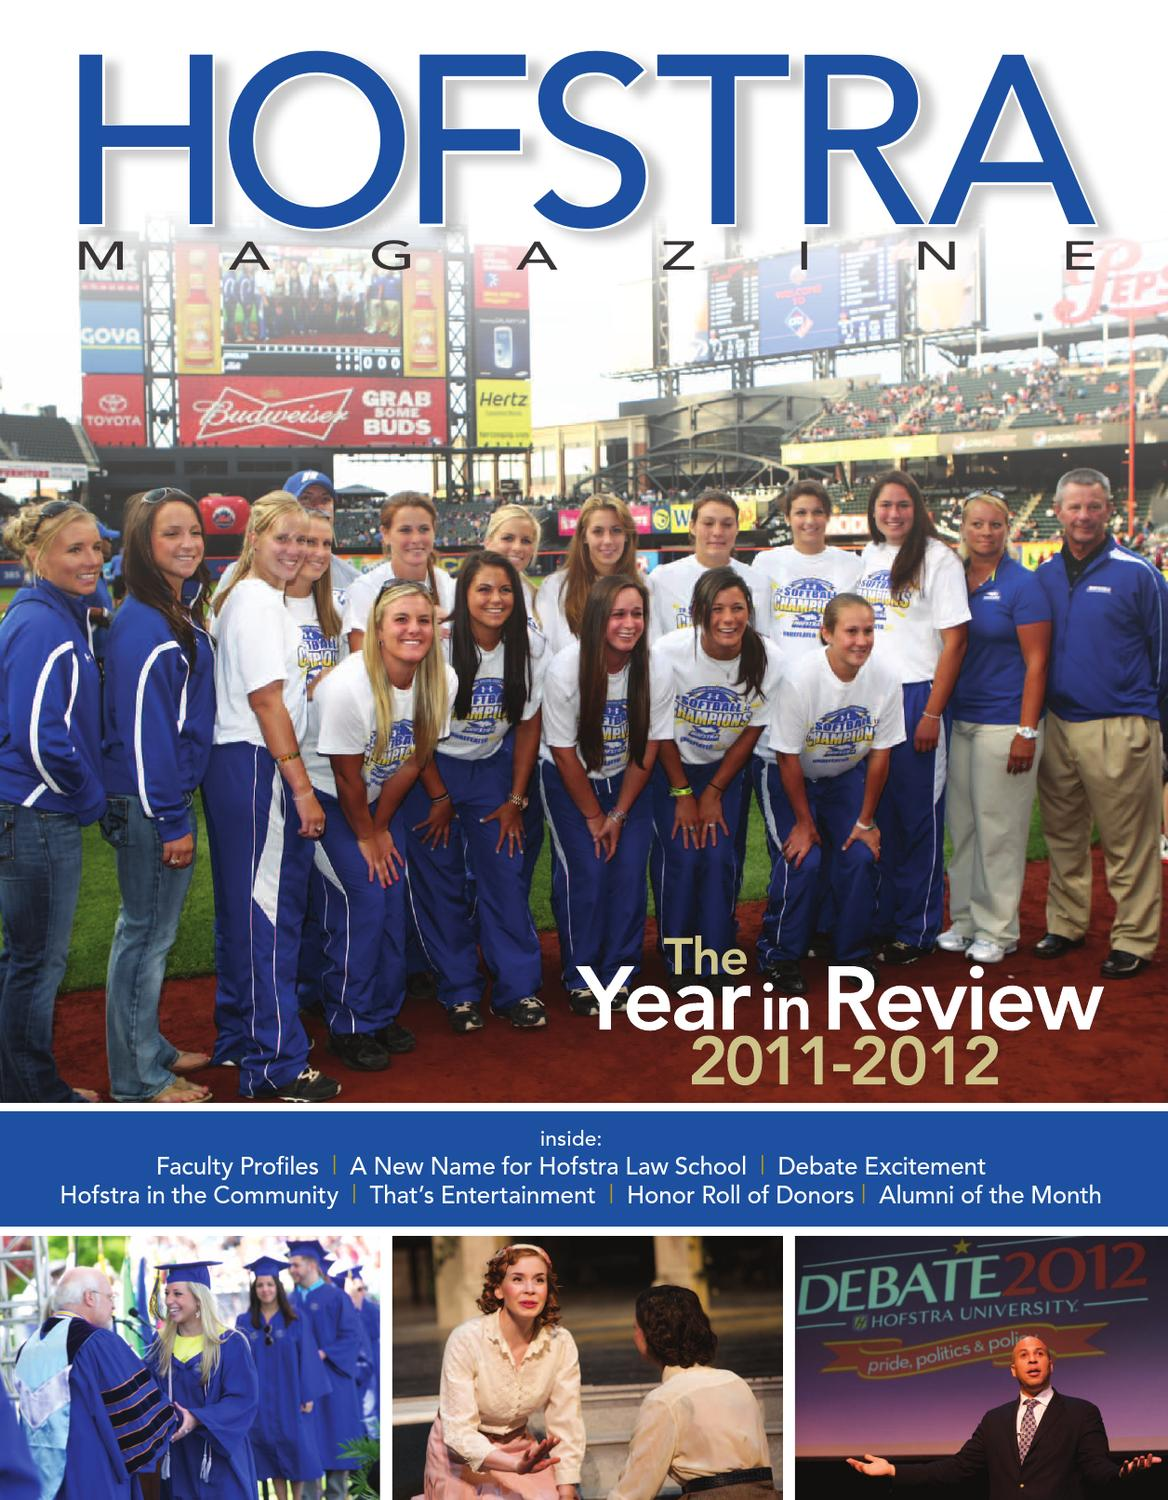 Hofstra Magazine - 2012 Annual Report by Hofstra University